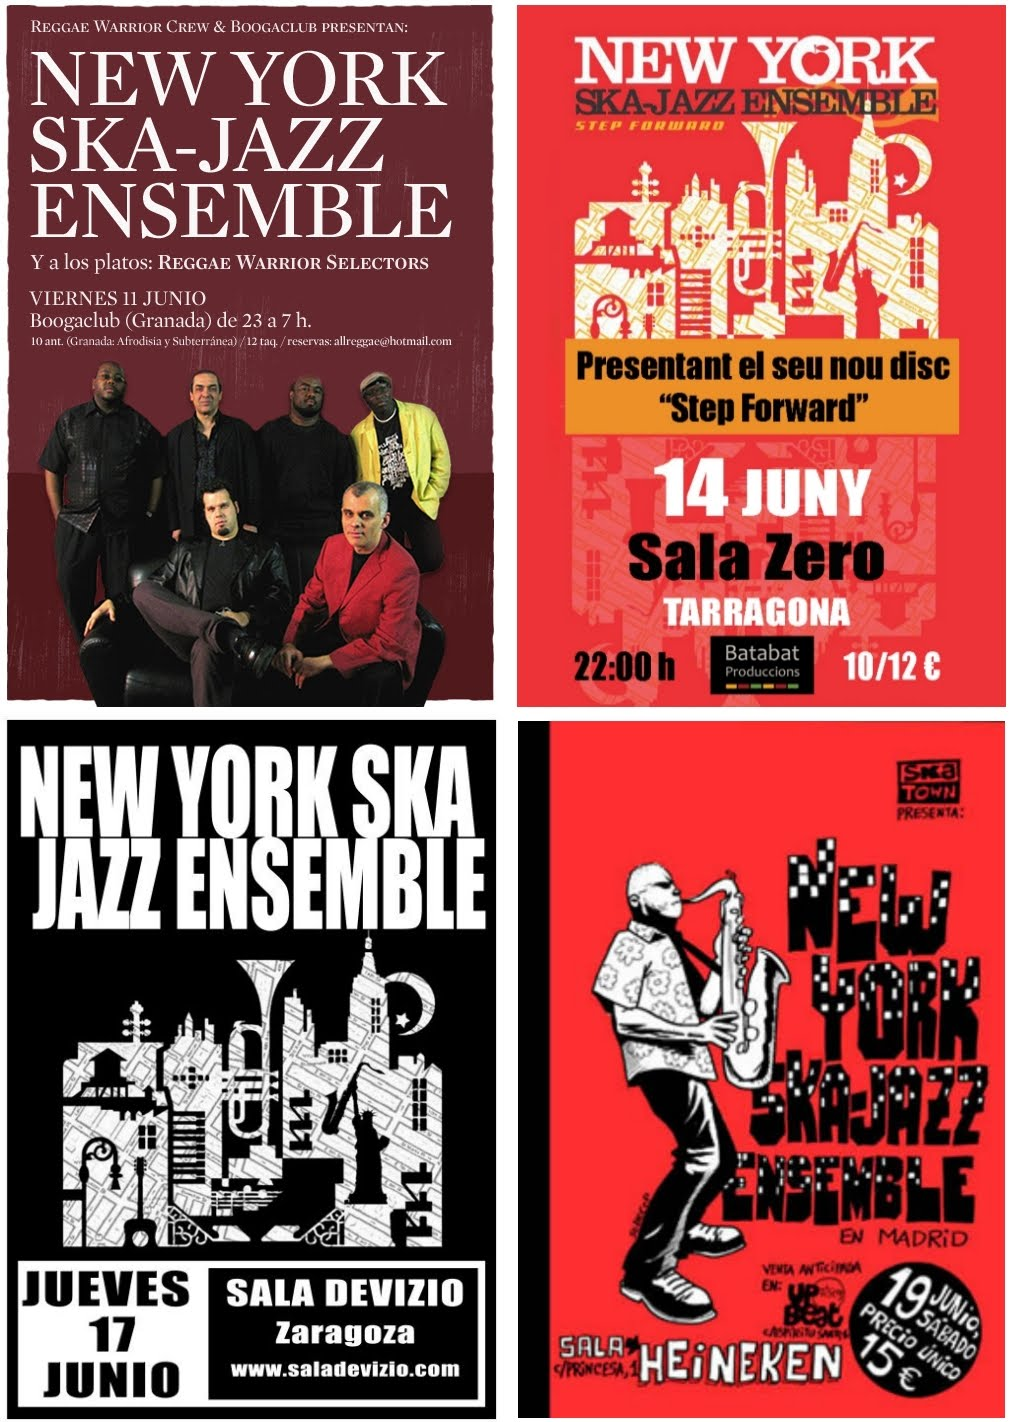 ... ENSEMBLE on tour junio / ekaina / june 2010 (FLYERS) : BRIXTON RECORDS